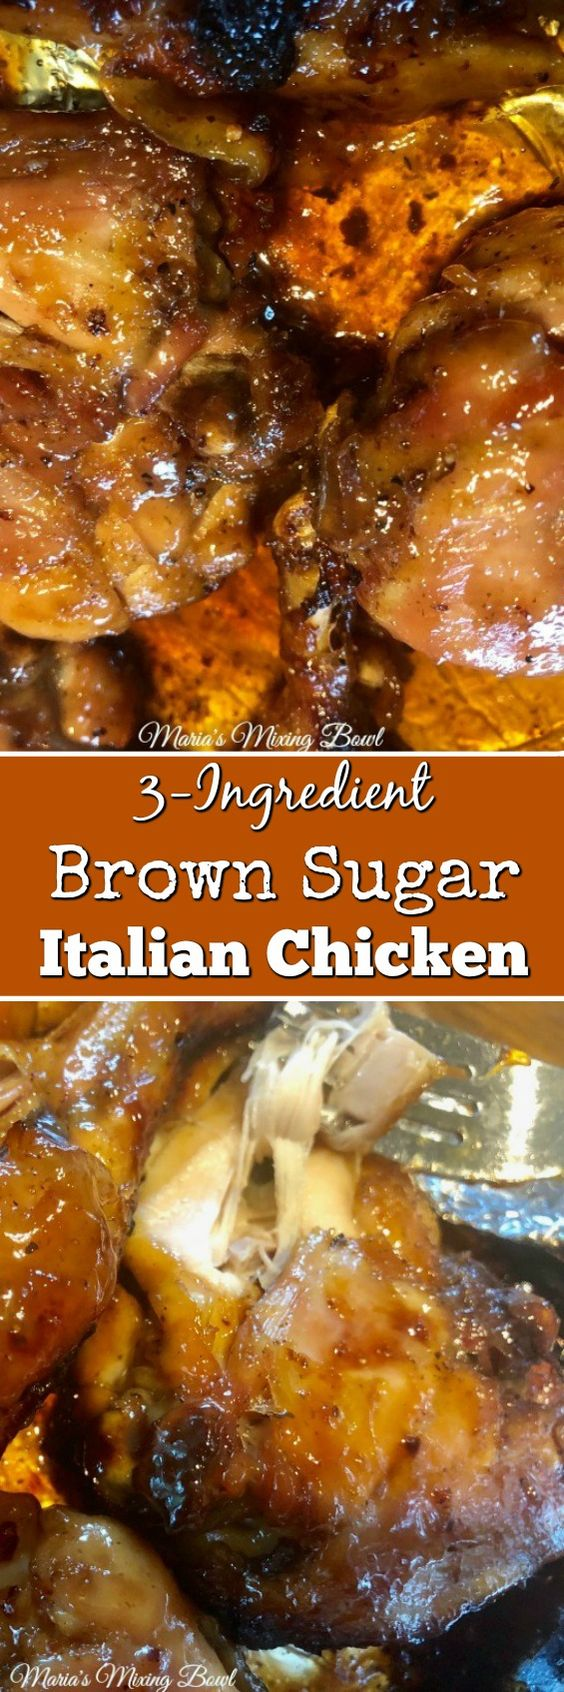 3-Ingredient Brown Sugar Italian Chicken - Italian dressing mix, brown sugar and chicken. Ready in under 30 minutes! A favorite weeknight meal.